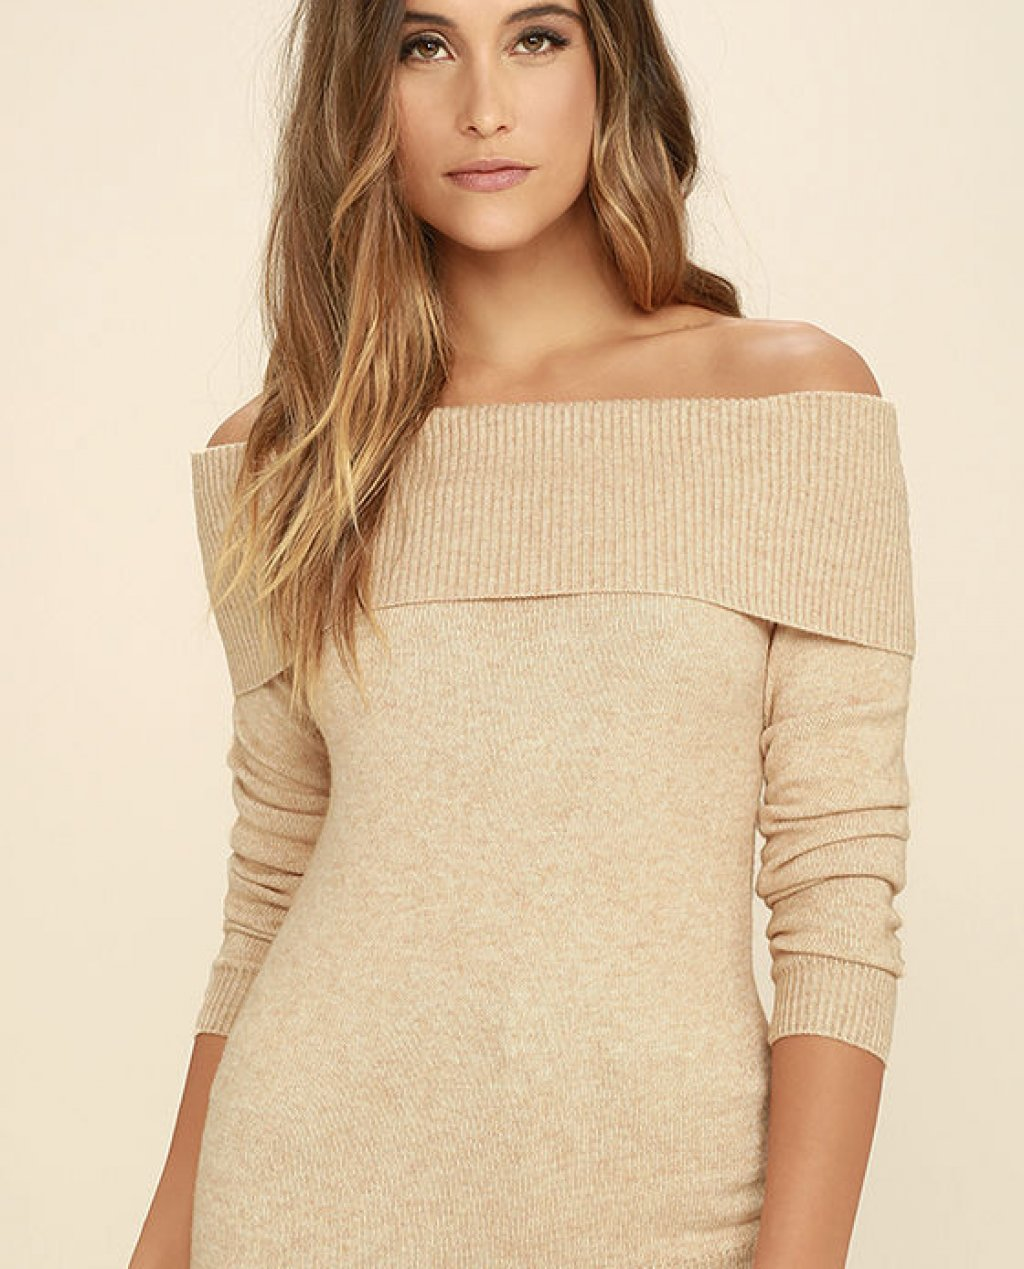 Thats What Friends Are For Beige Off-the-Shoulder Sweater